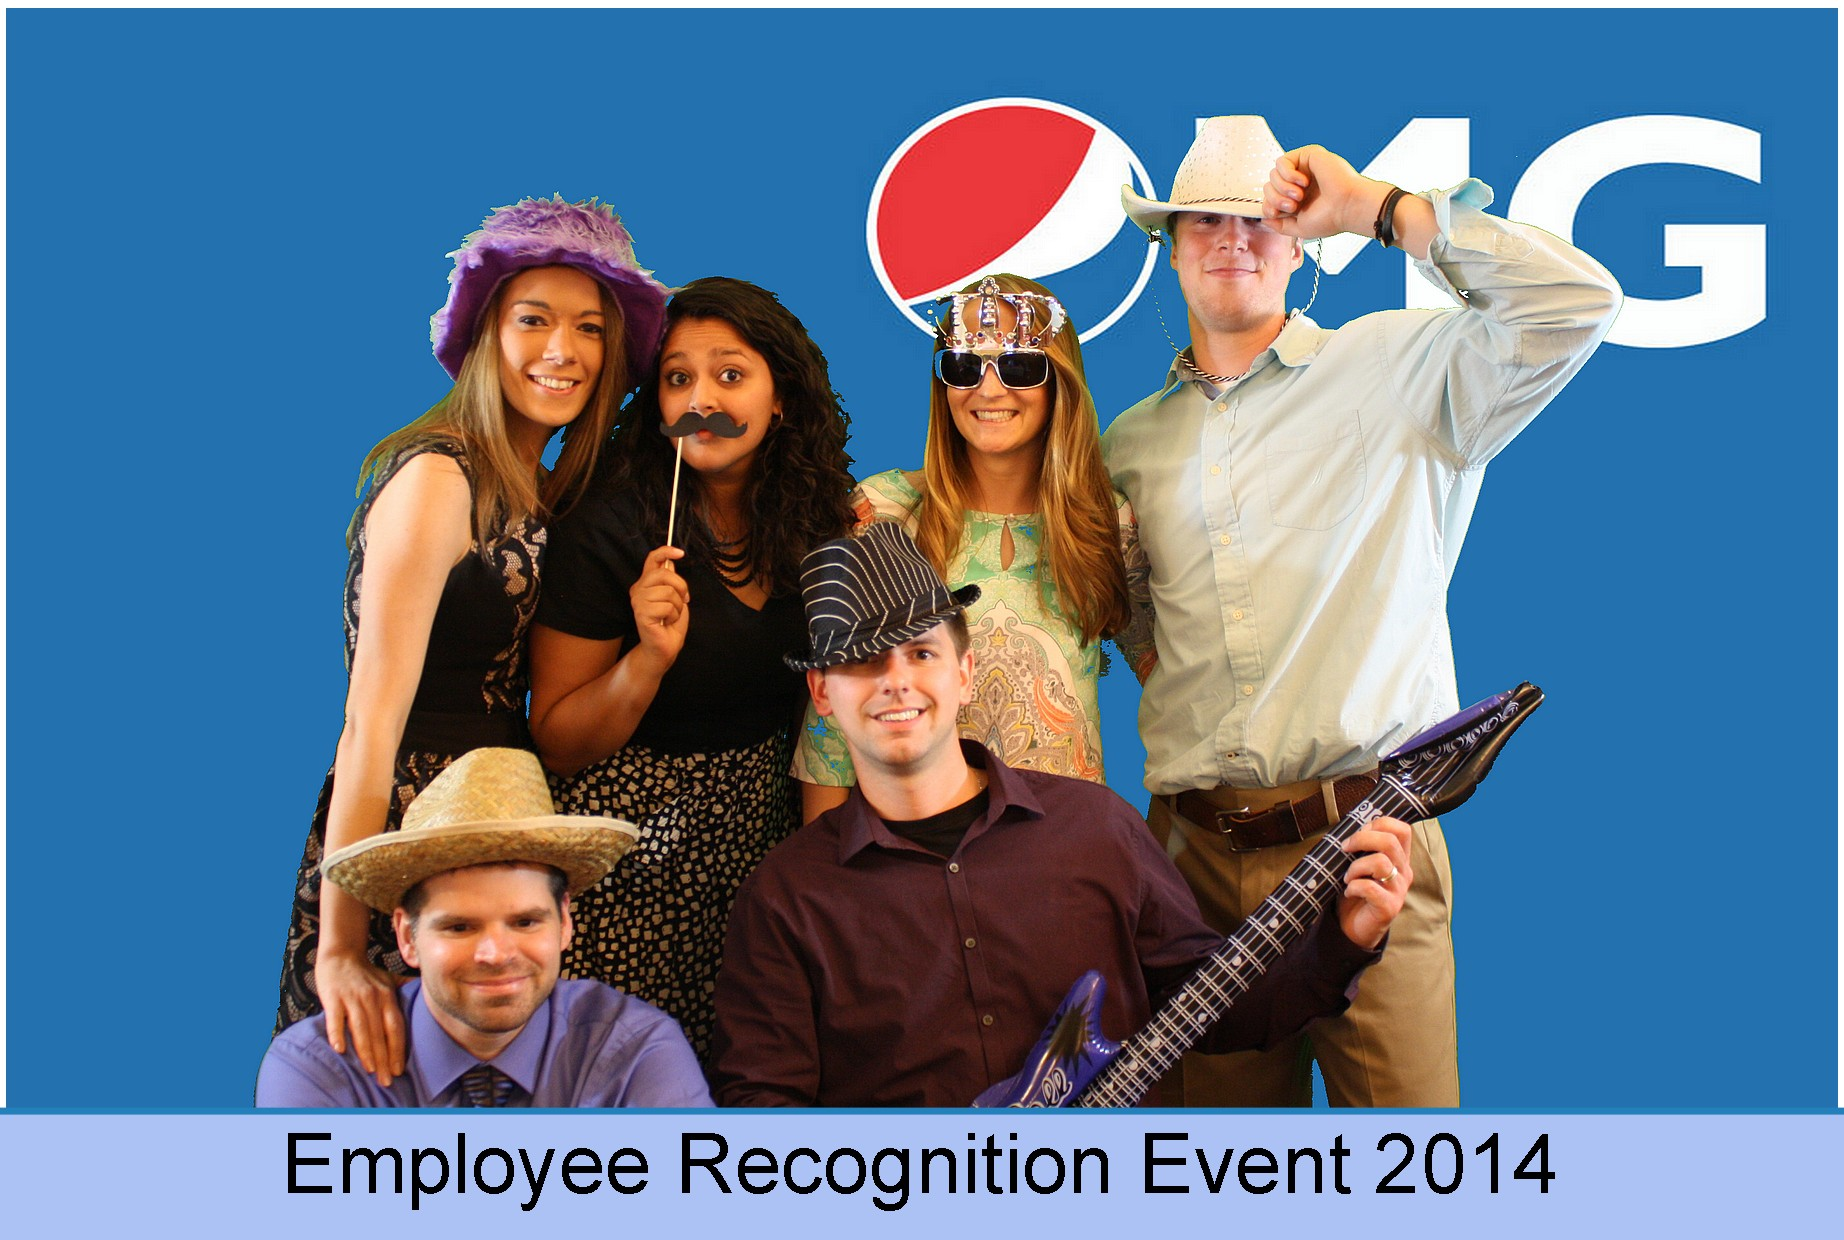 Pepsi Employee Recognition Event